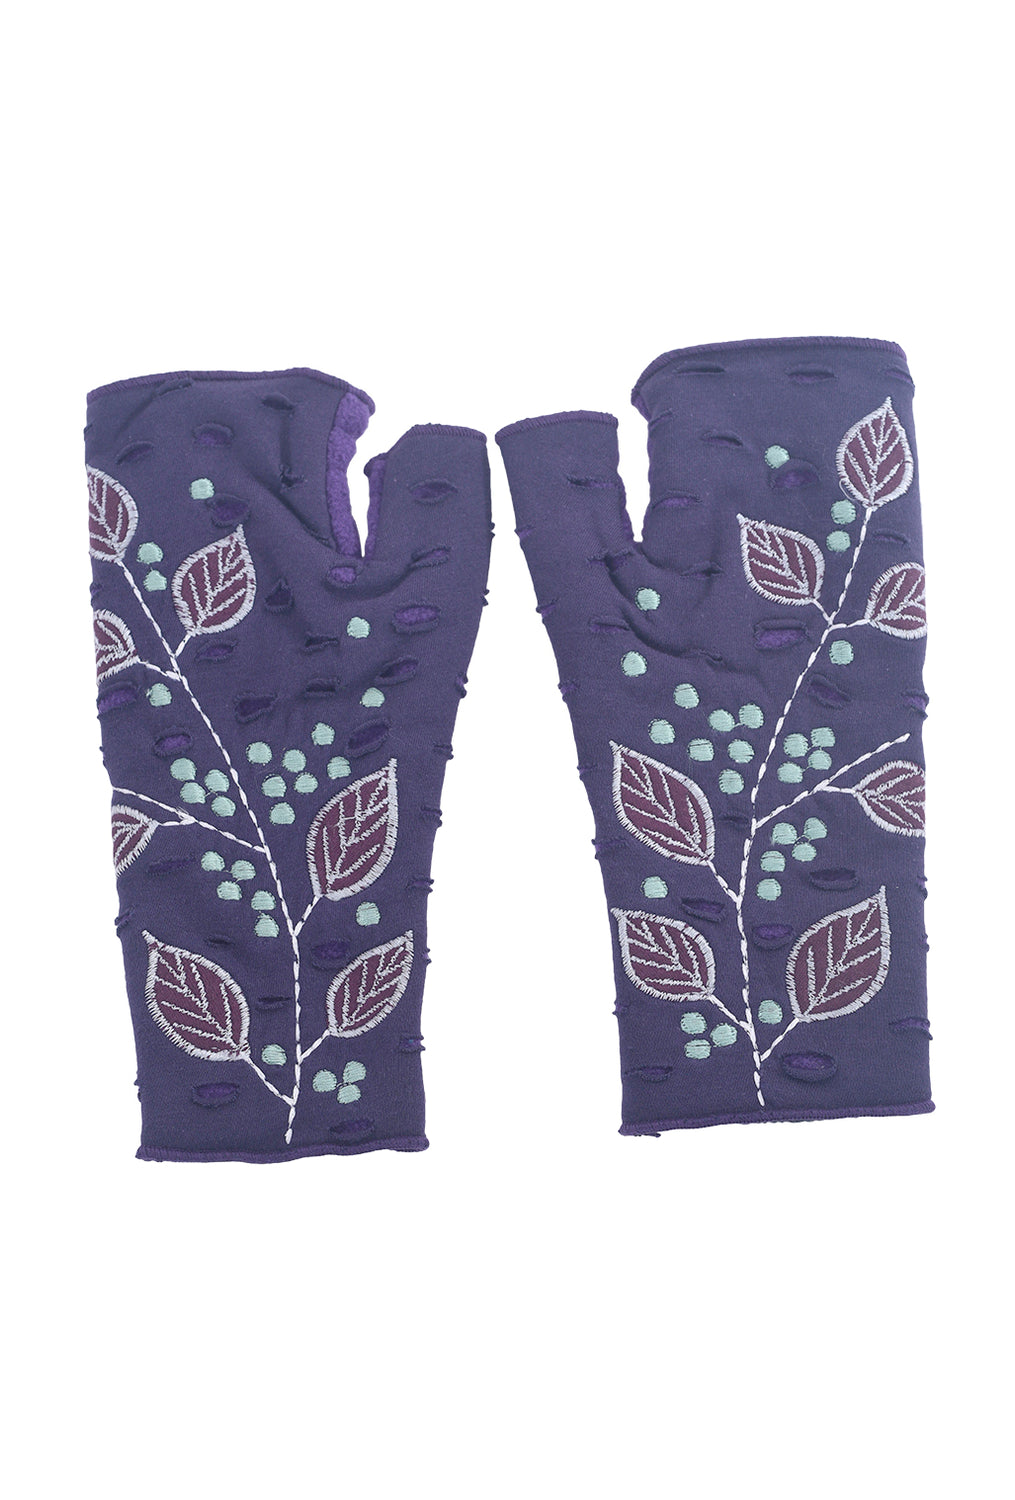 Rising Tide Folia Fingerless Gloves, Amethyst One Size Amethyst